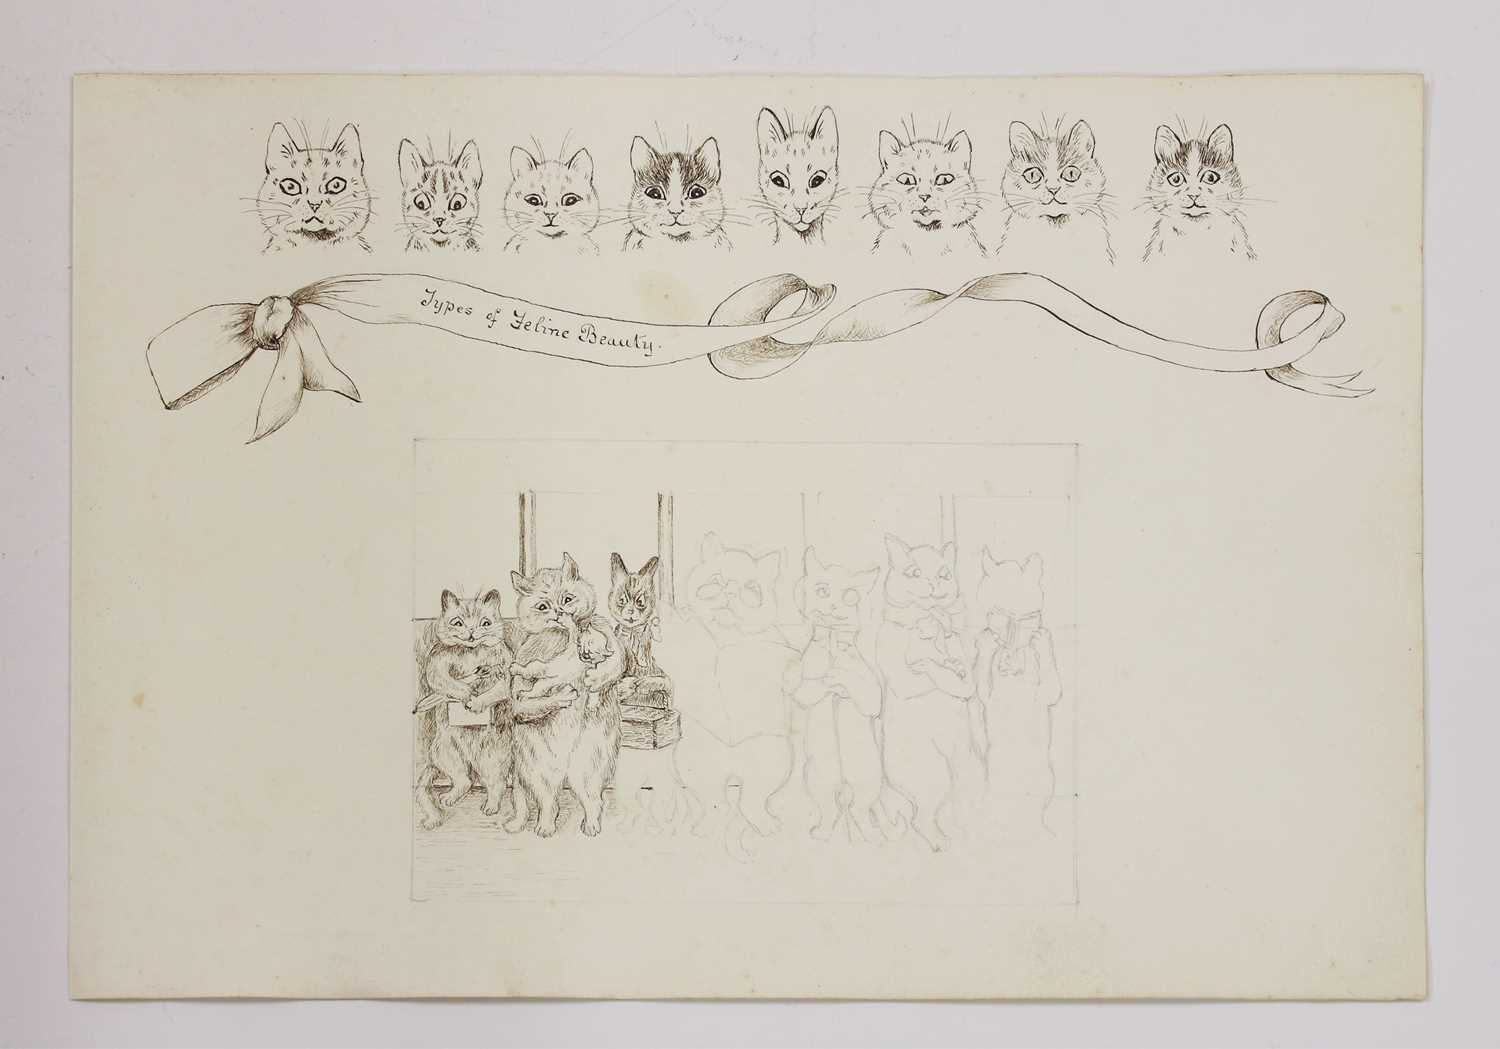 Attributed to Louis Wain (1860-1939) - Image 2 of 8